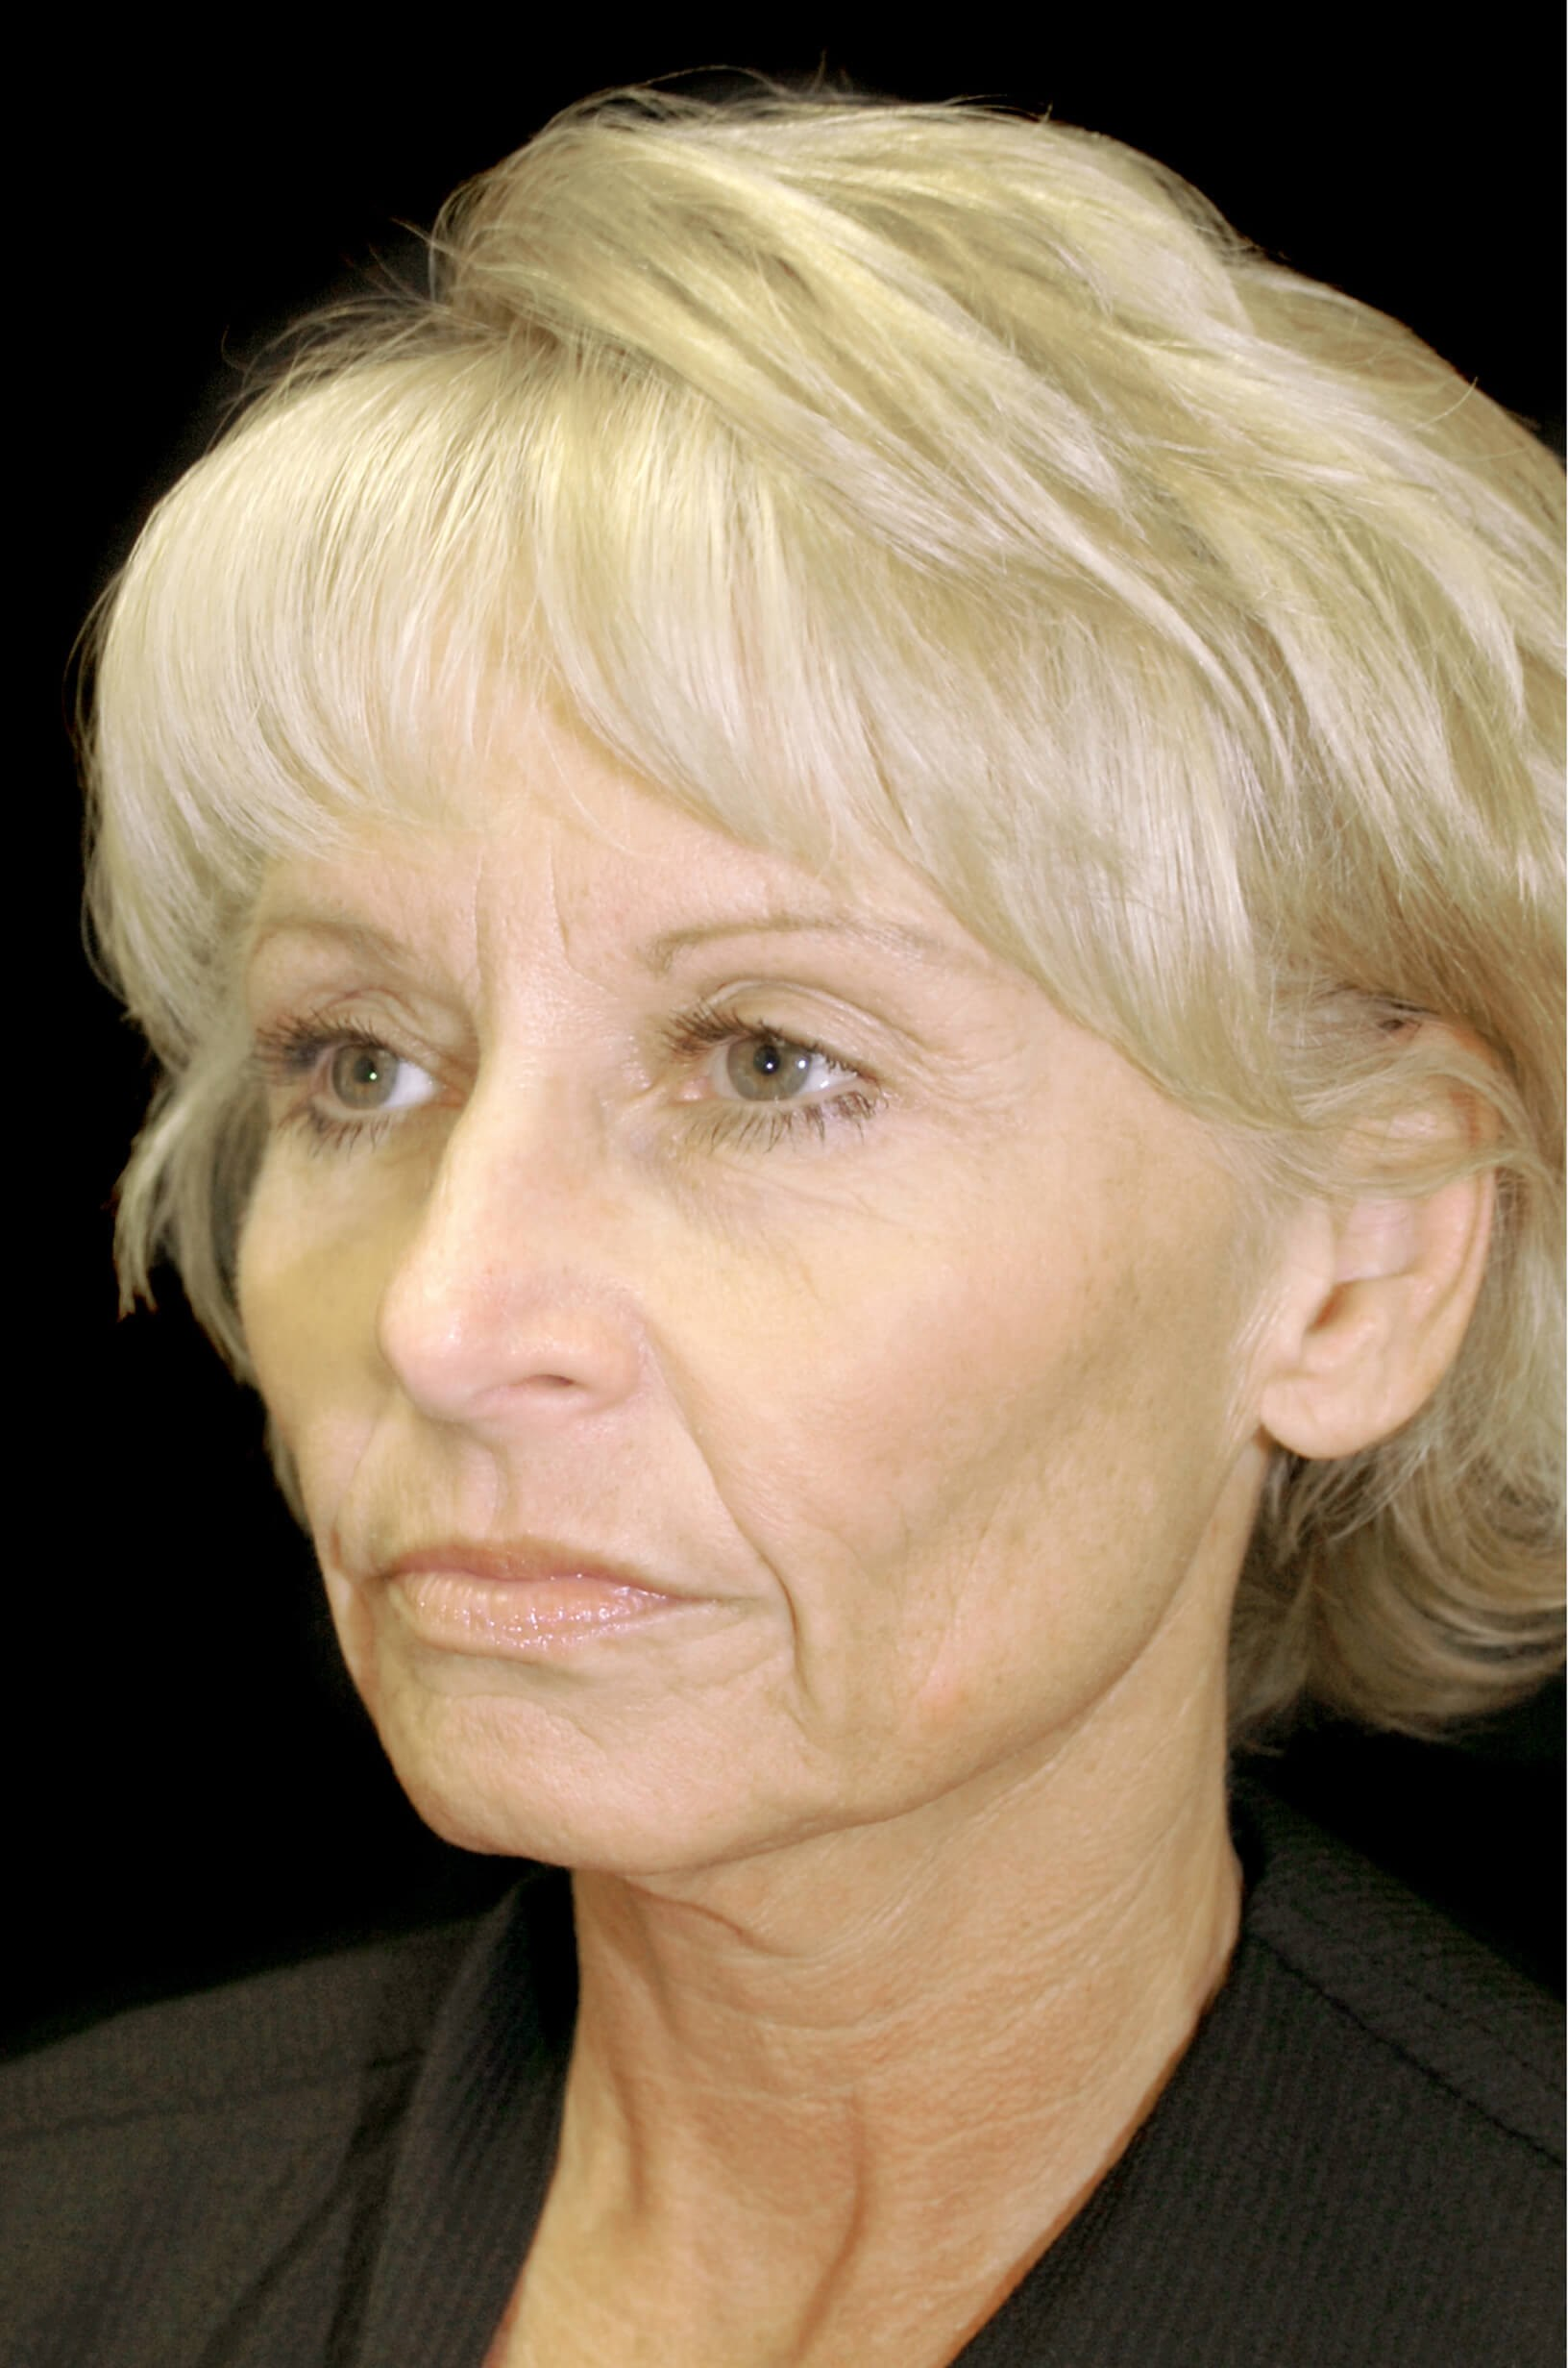 DALLAS, TEXAS WOMAN REJUVENATES HER APPEARANCE BY HAVING A FACELIFT.